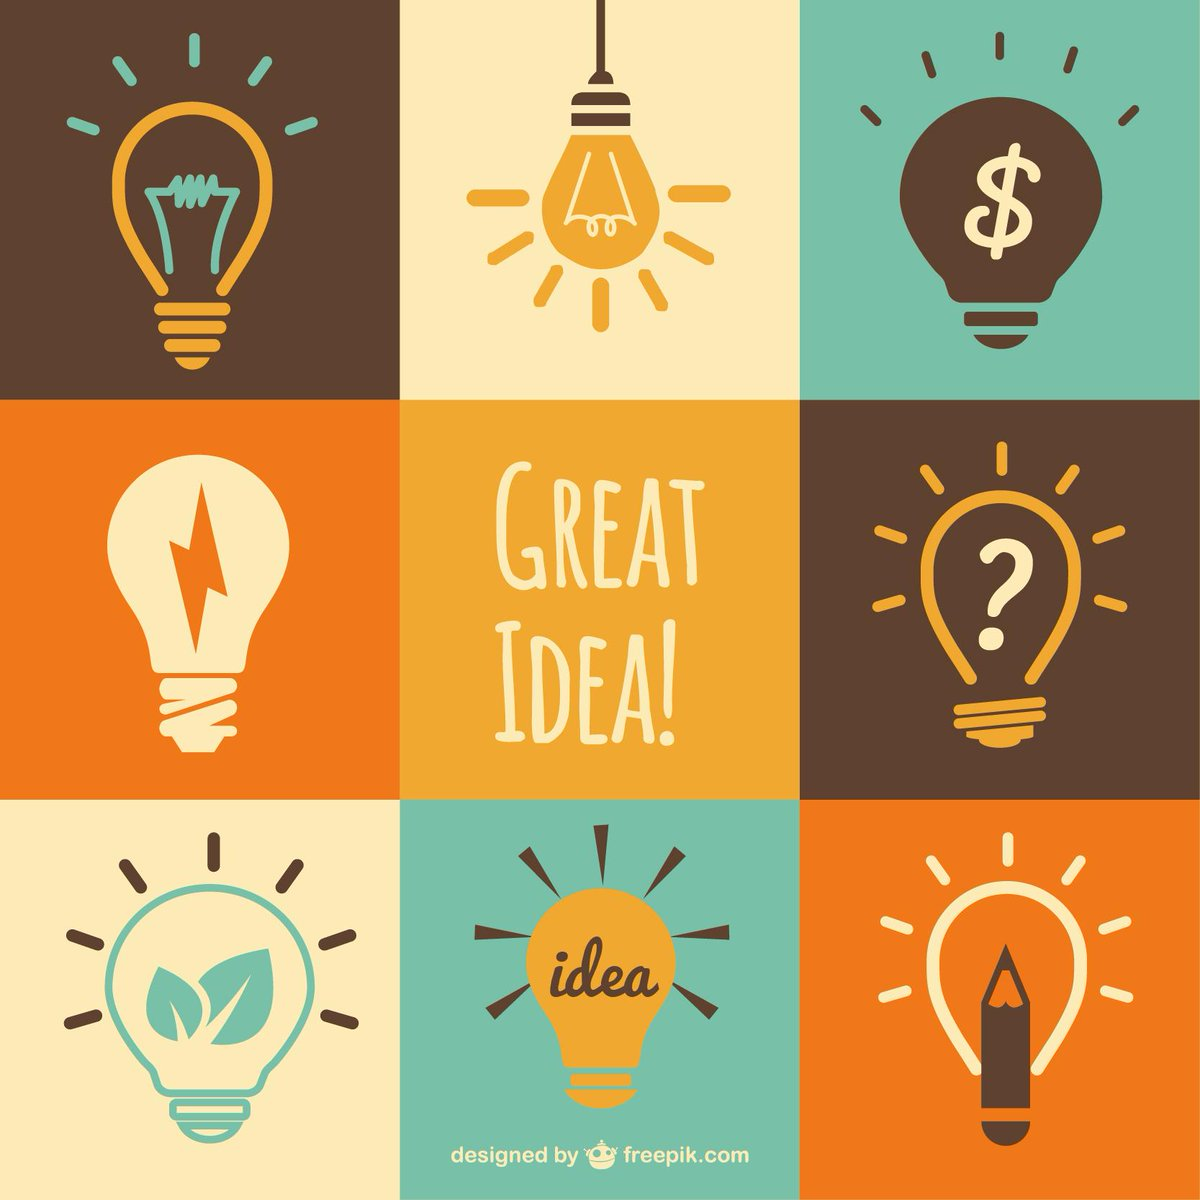 Super Creative Ideas for Crafting Content Topics Your Readers Love http://t.co/m7ZbjTYeW2 http://t.co/5ym7jvzCBJ